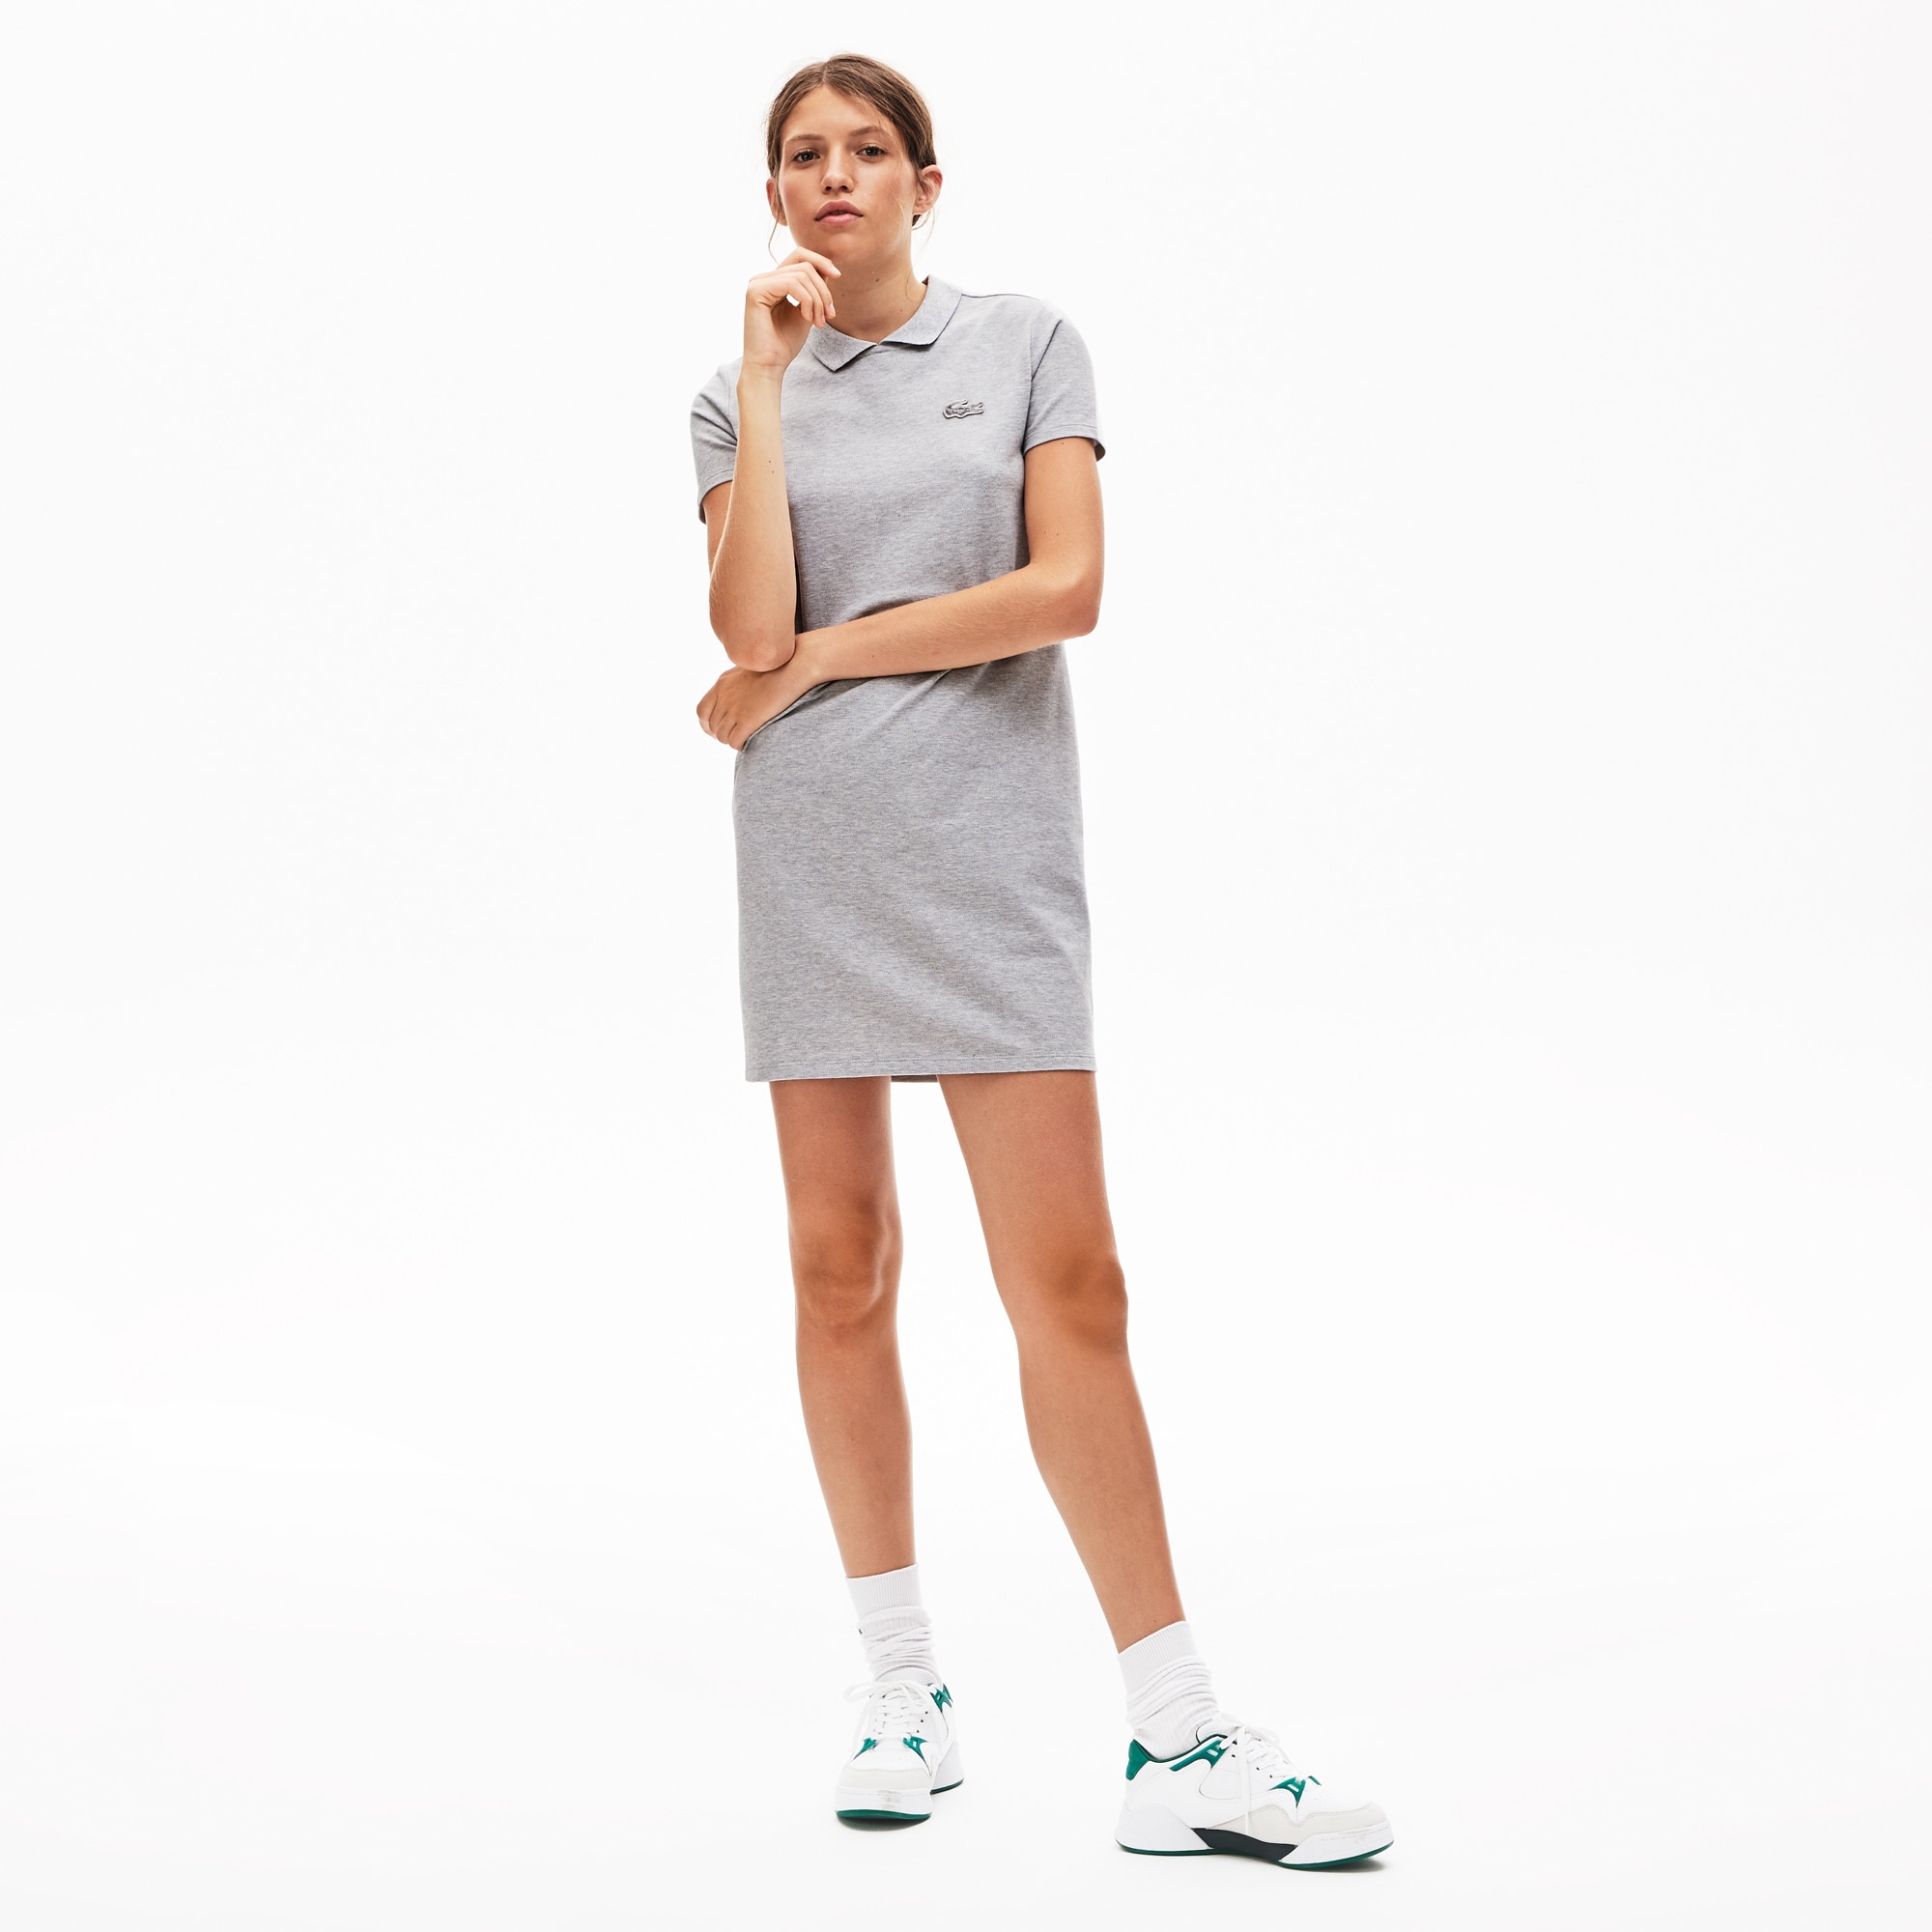 Lacoste Dresses Women's LIVE Stretch Piqué Velvet Crocodile Polo Dress